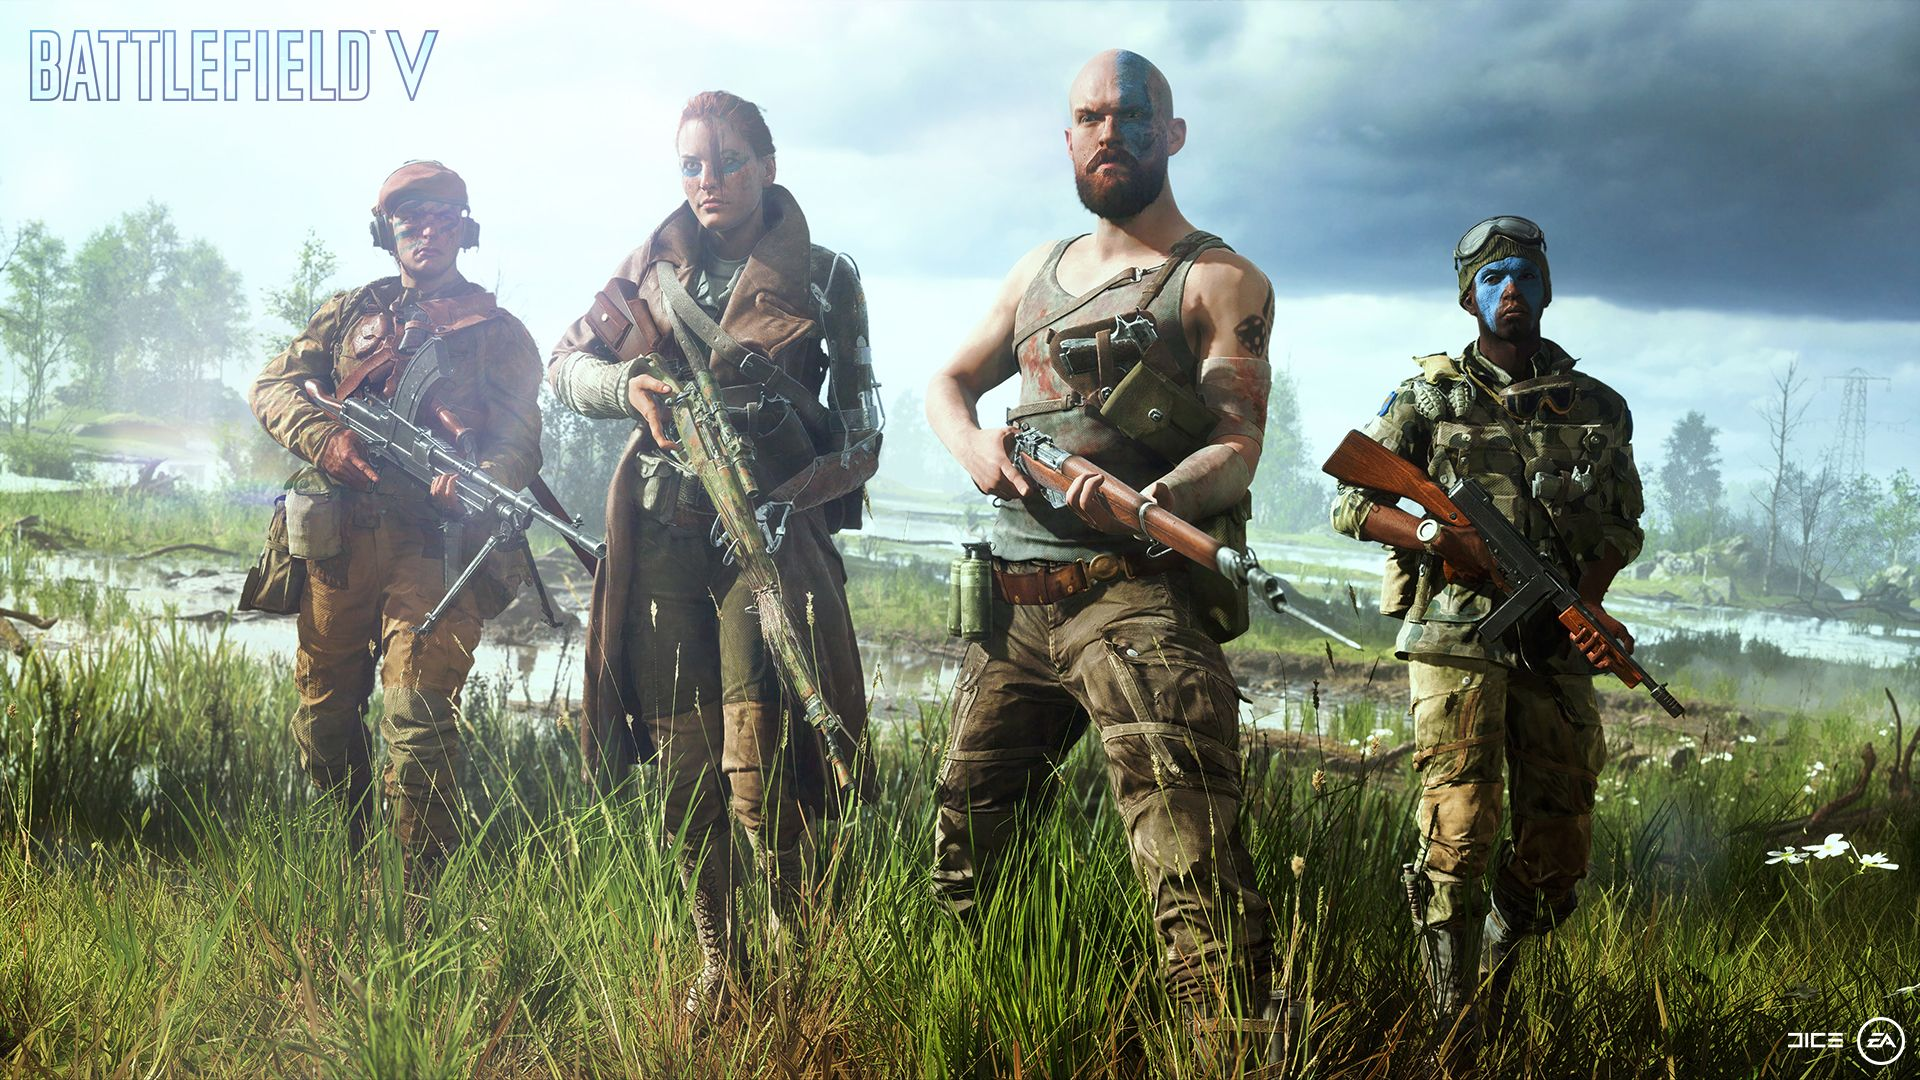 Battlefield 5 Has Been Unveiled With A Very Unique Approach To The Fortnite